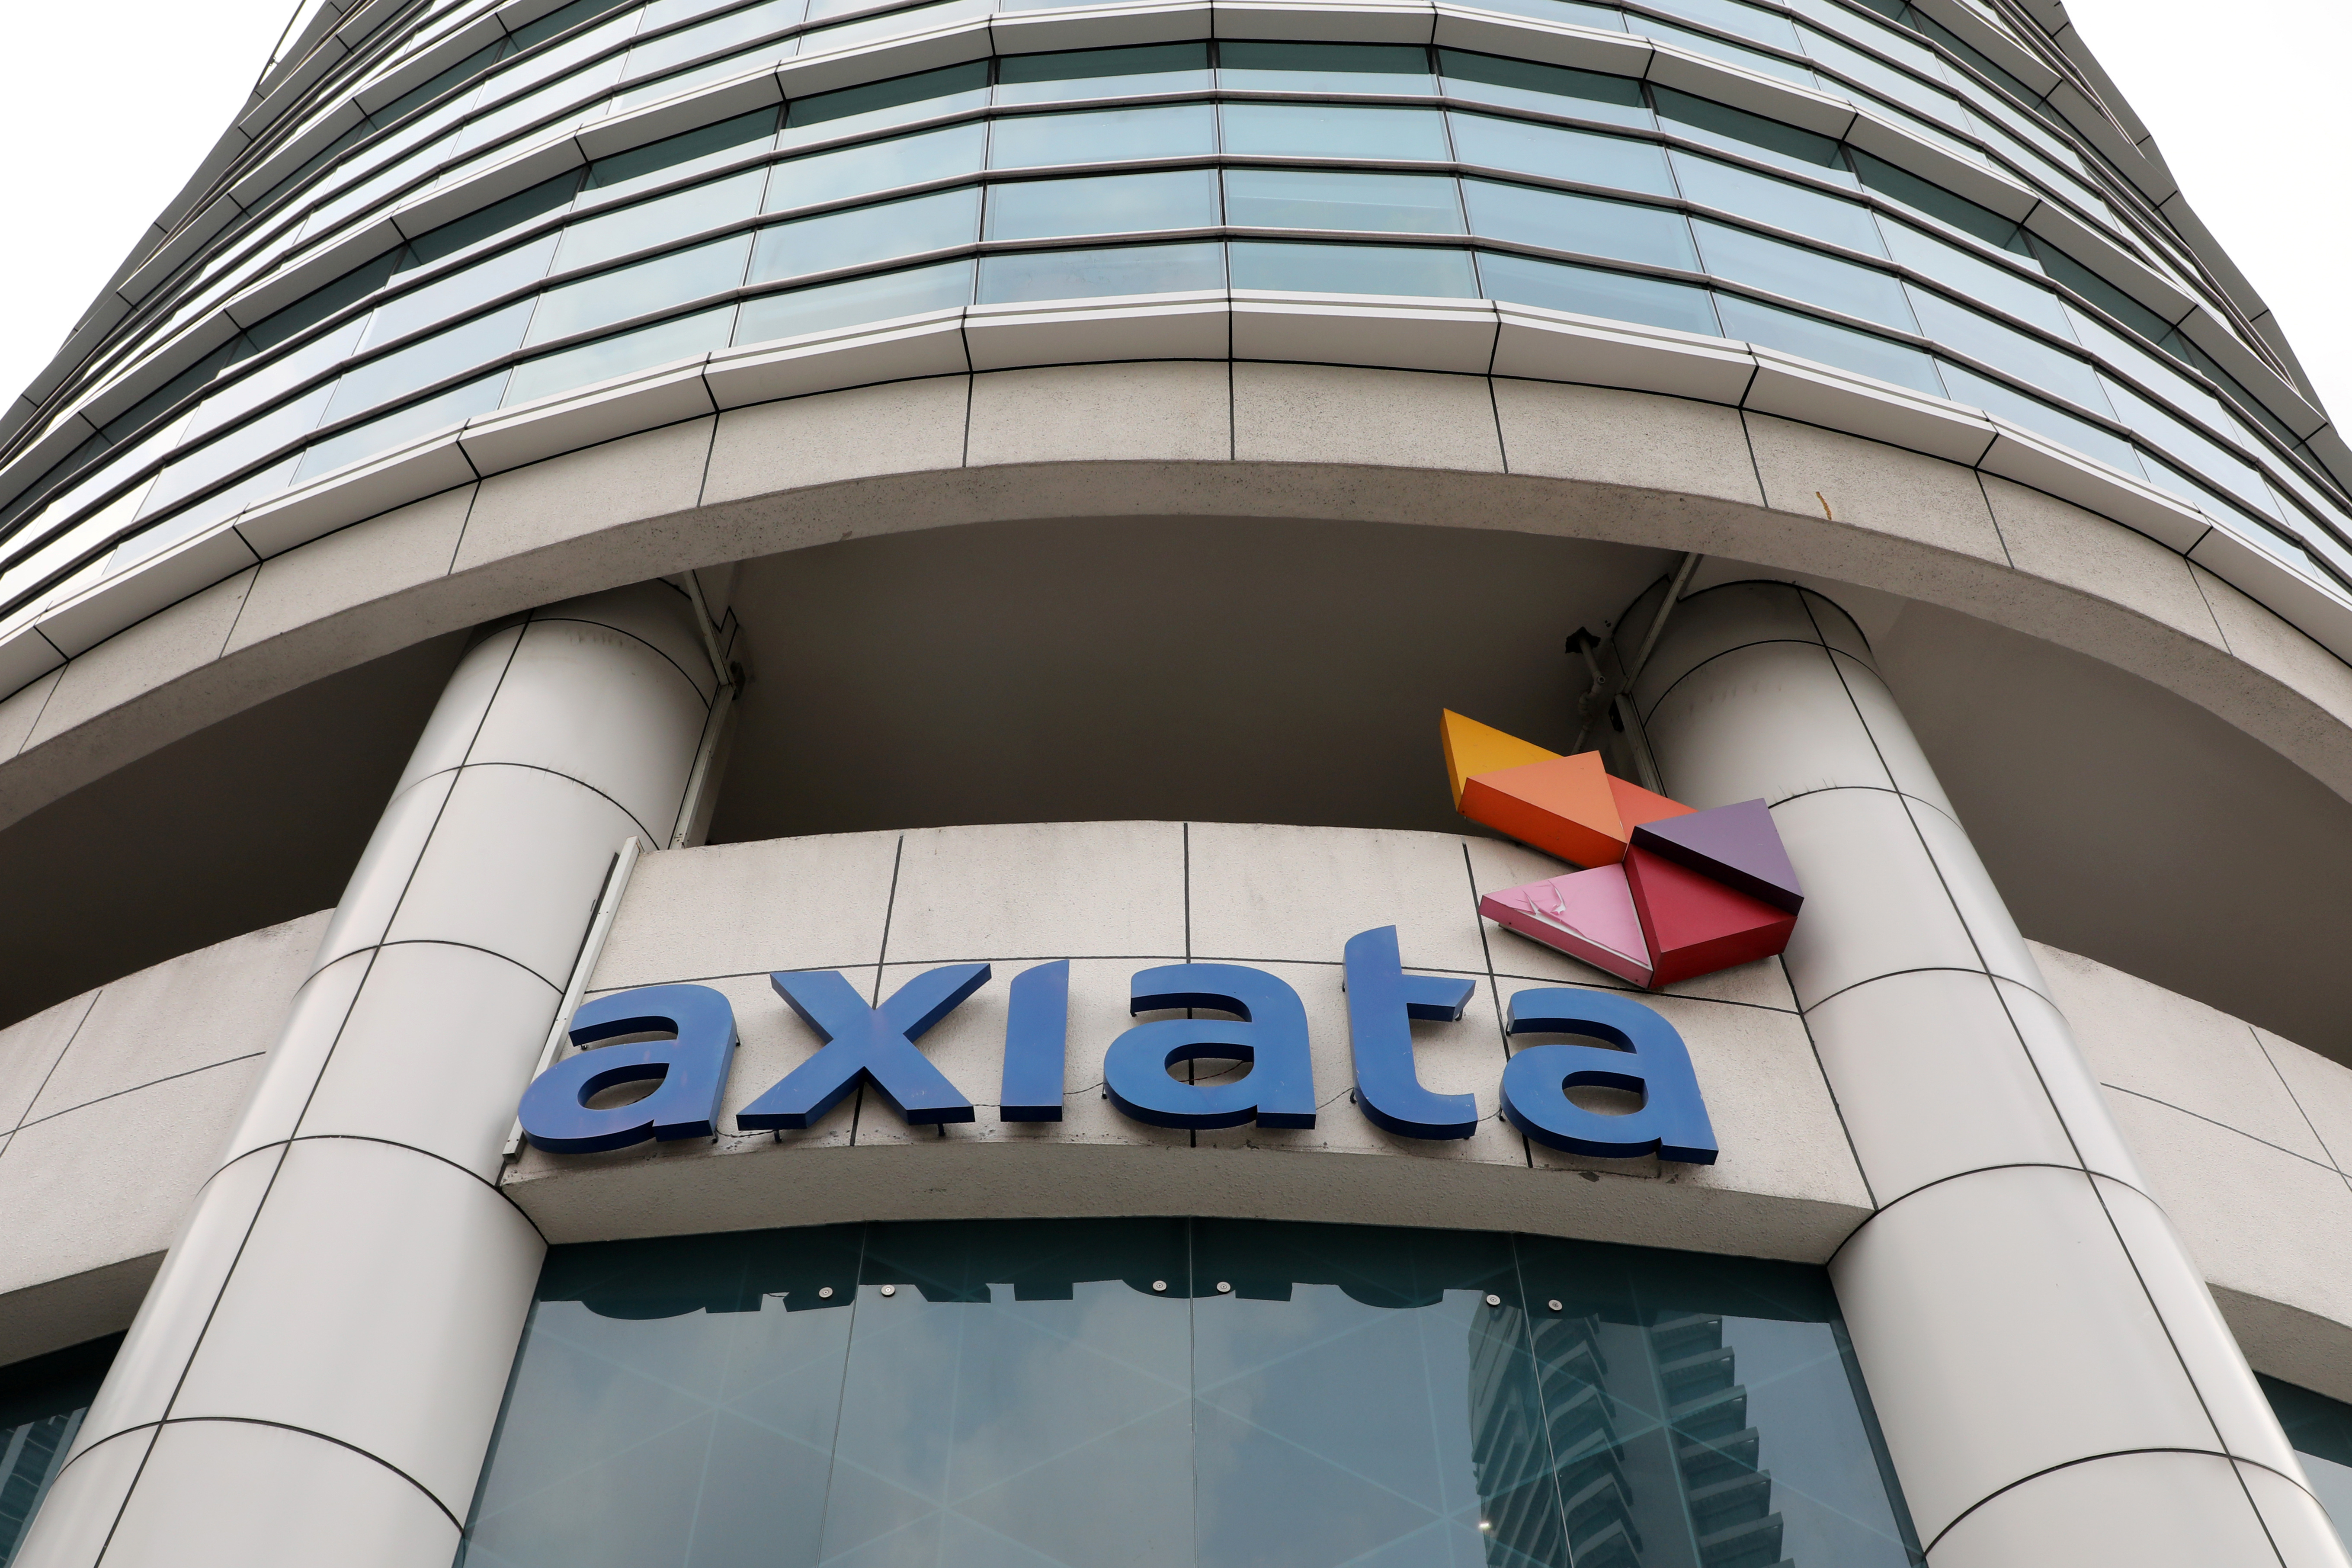 A general view of the Axiata headquarters building in Kuala Lumpur, Malaysia, October 1, 2019. REUTERS/Lim Huey Teng